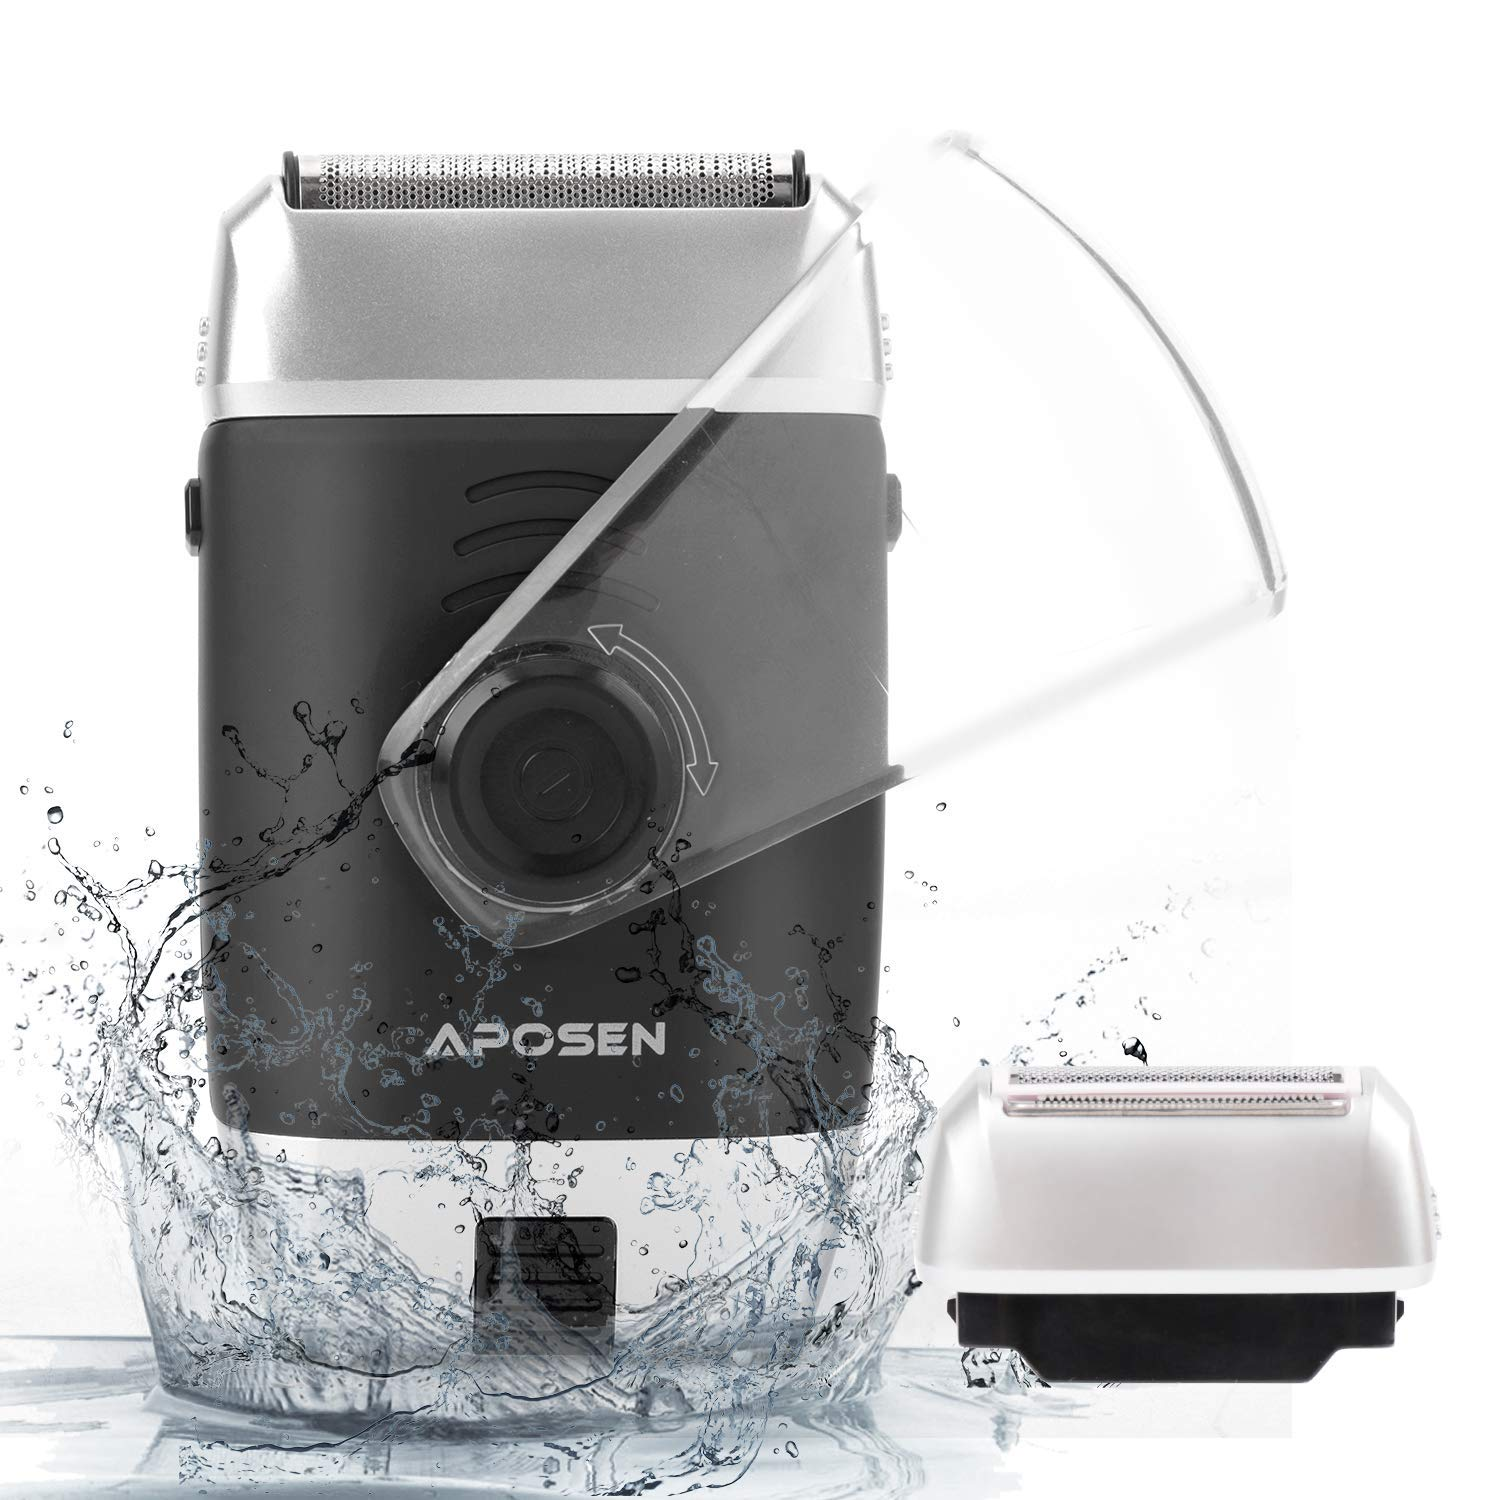 APOSEN Electric Razor for Men, Cordless Travel Electric Shaver with Pop-up Trimmer, USB Rechargeable, Wet & Dry Foil Shaver